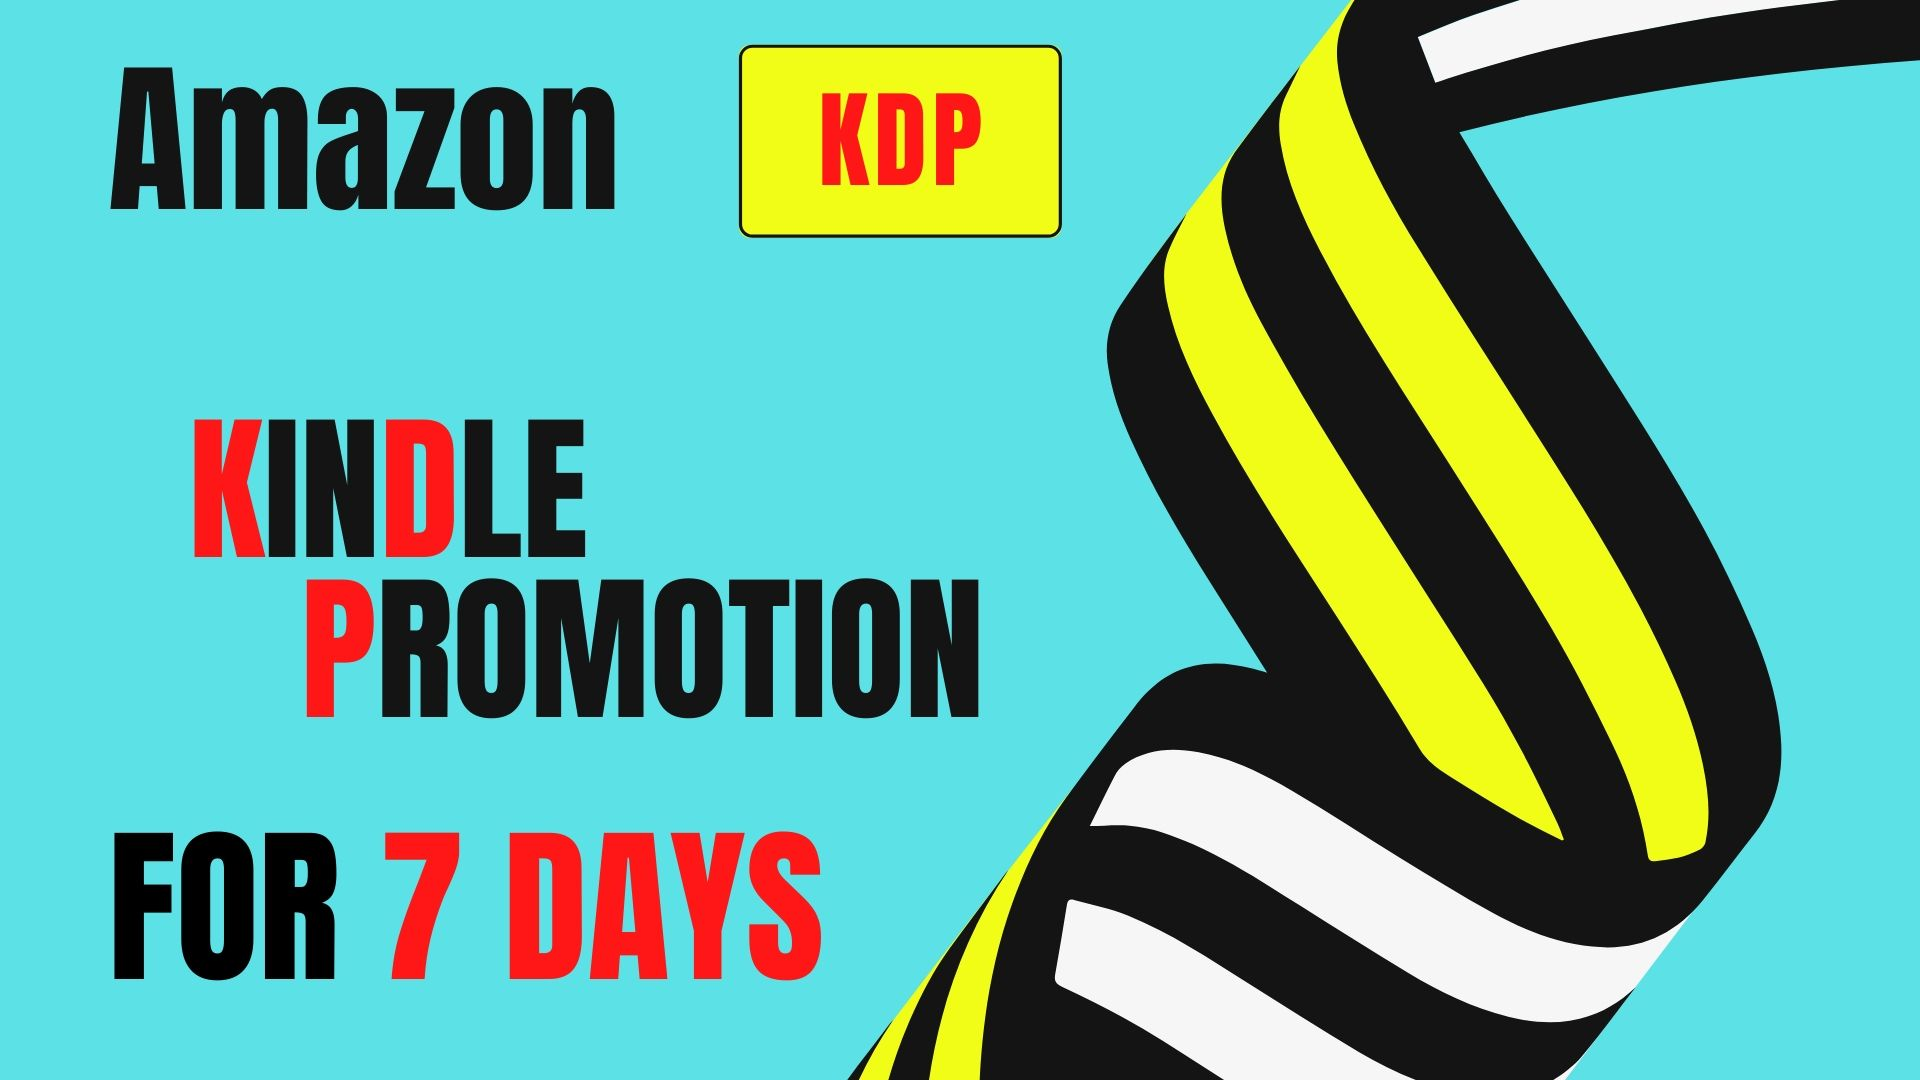 Do Amazon Kindle Promotion For 7 days